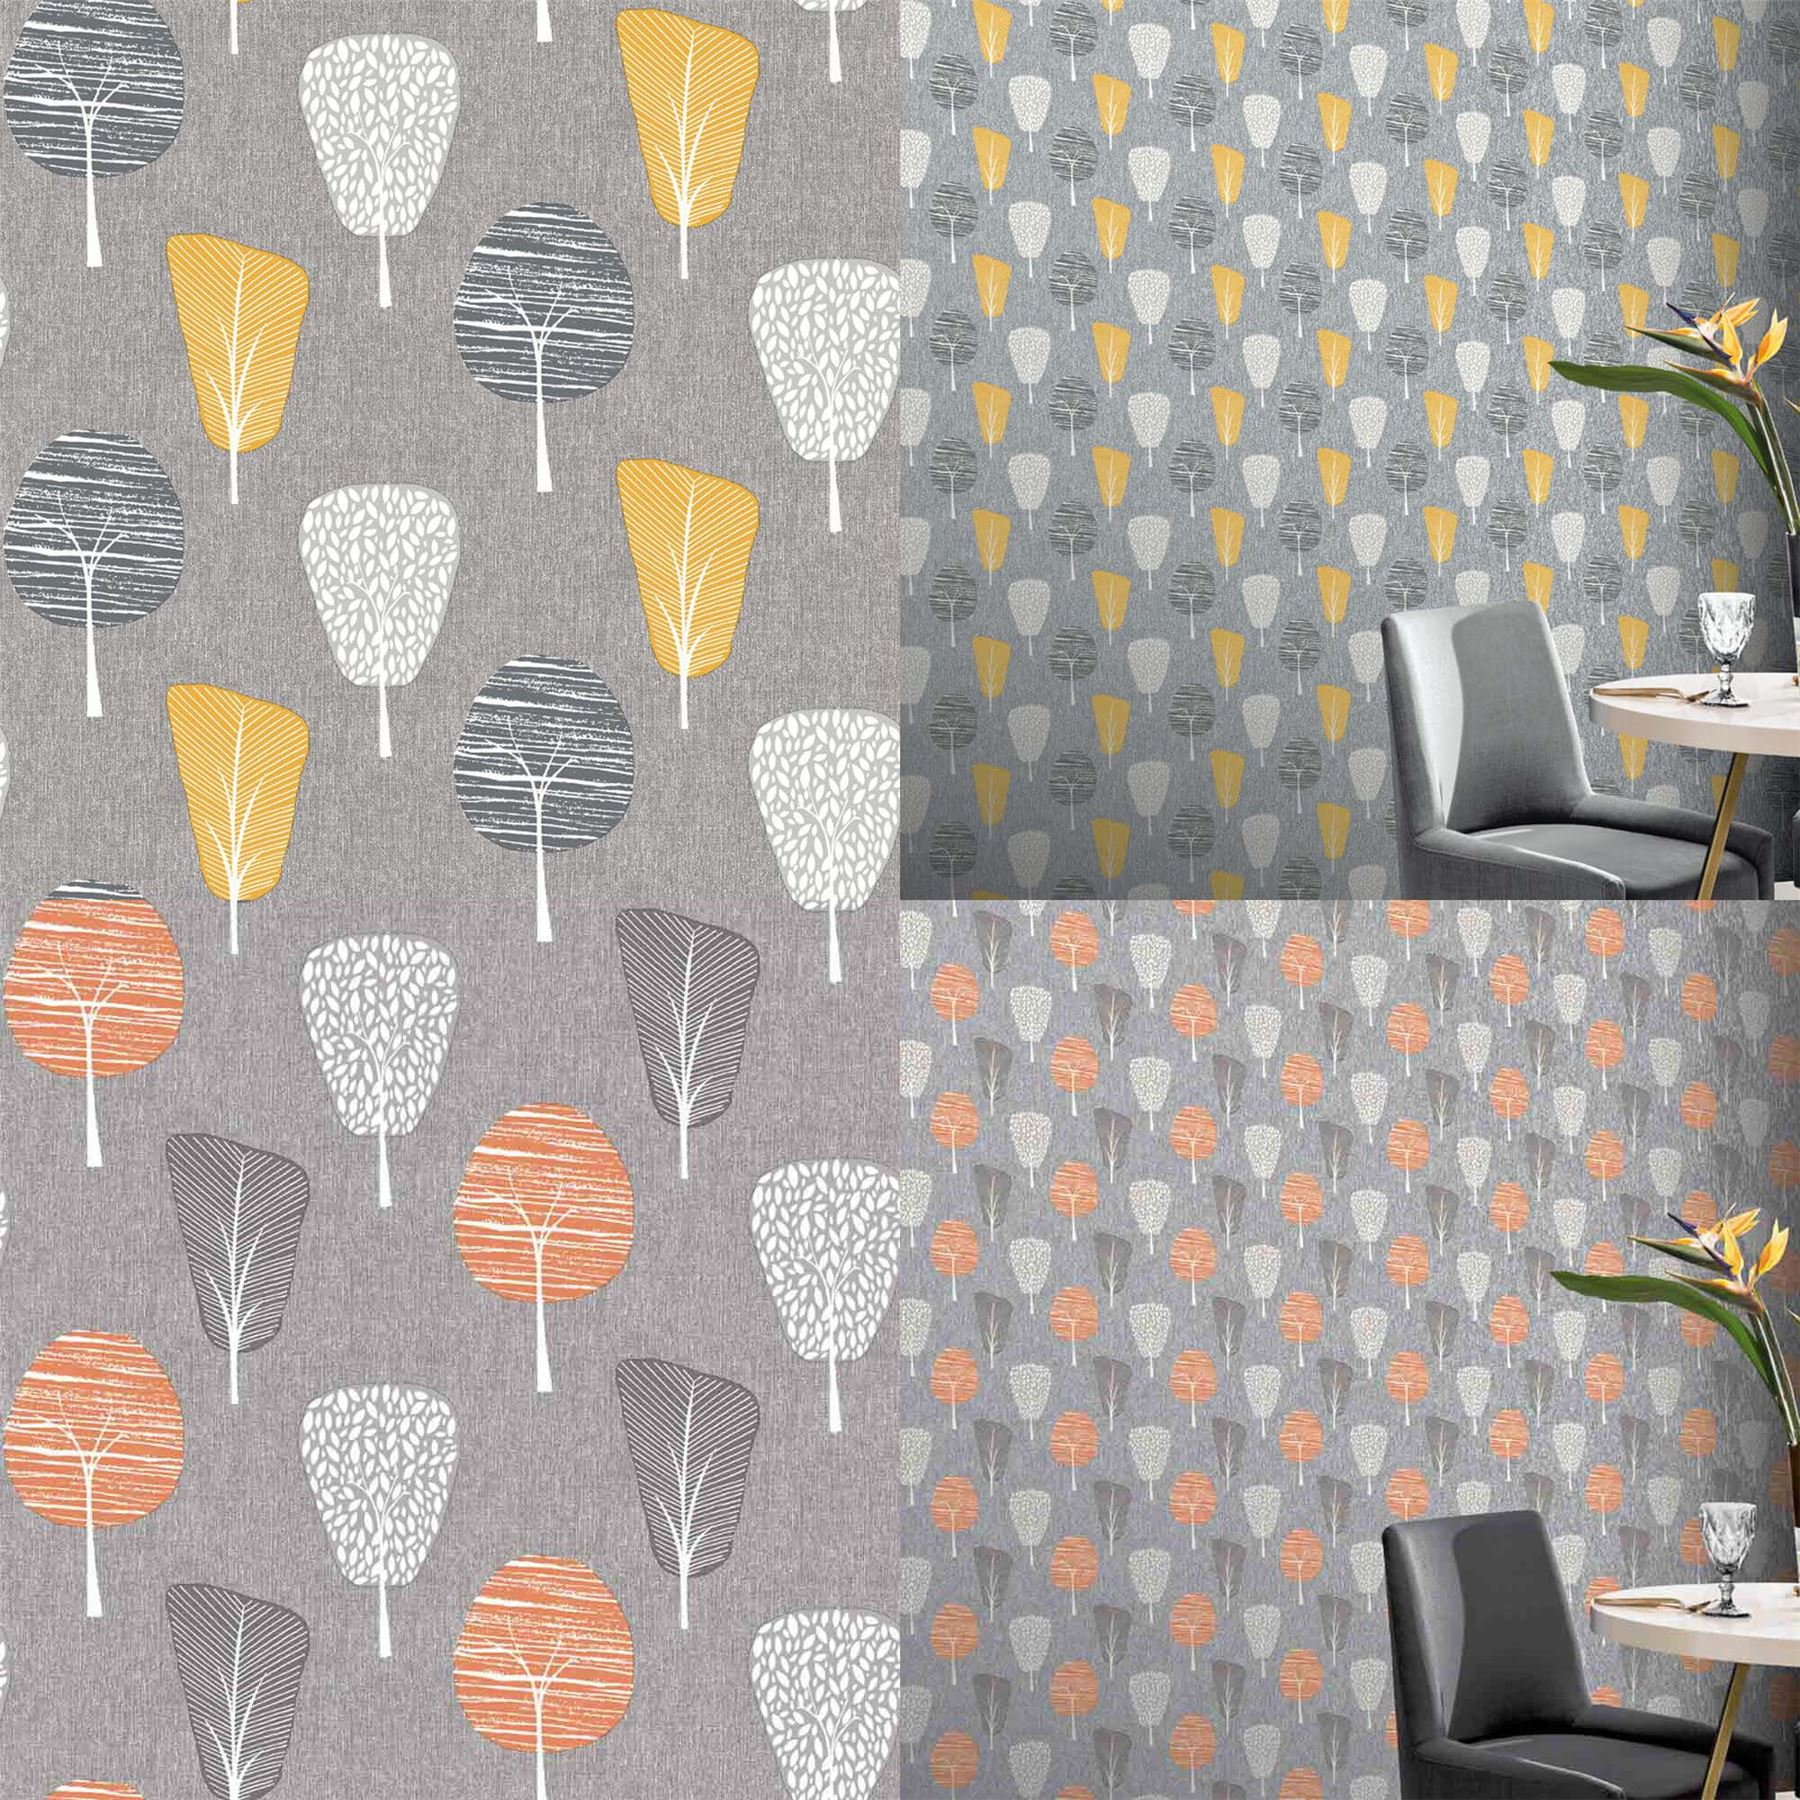 Retro Tree Grey Orange Yellow Wallpaper Forest Floral Botanical